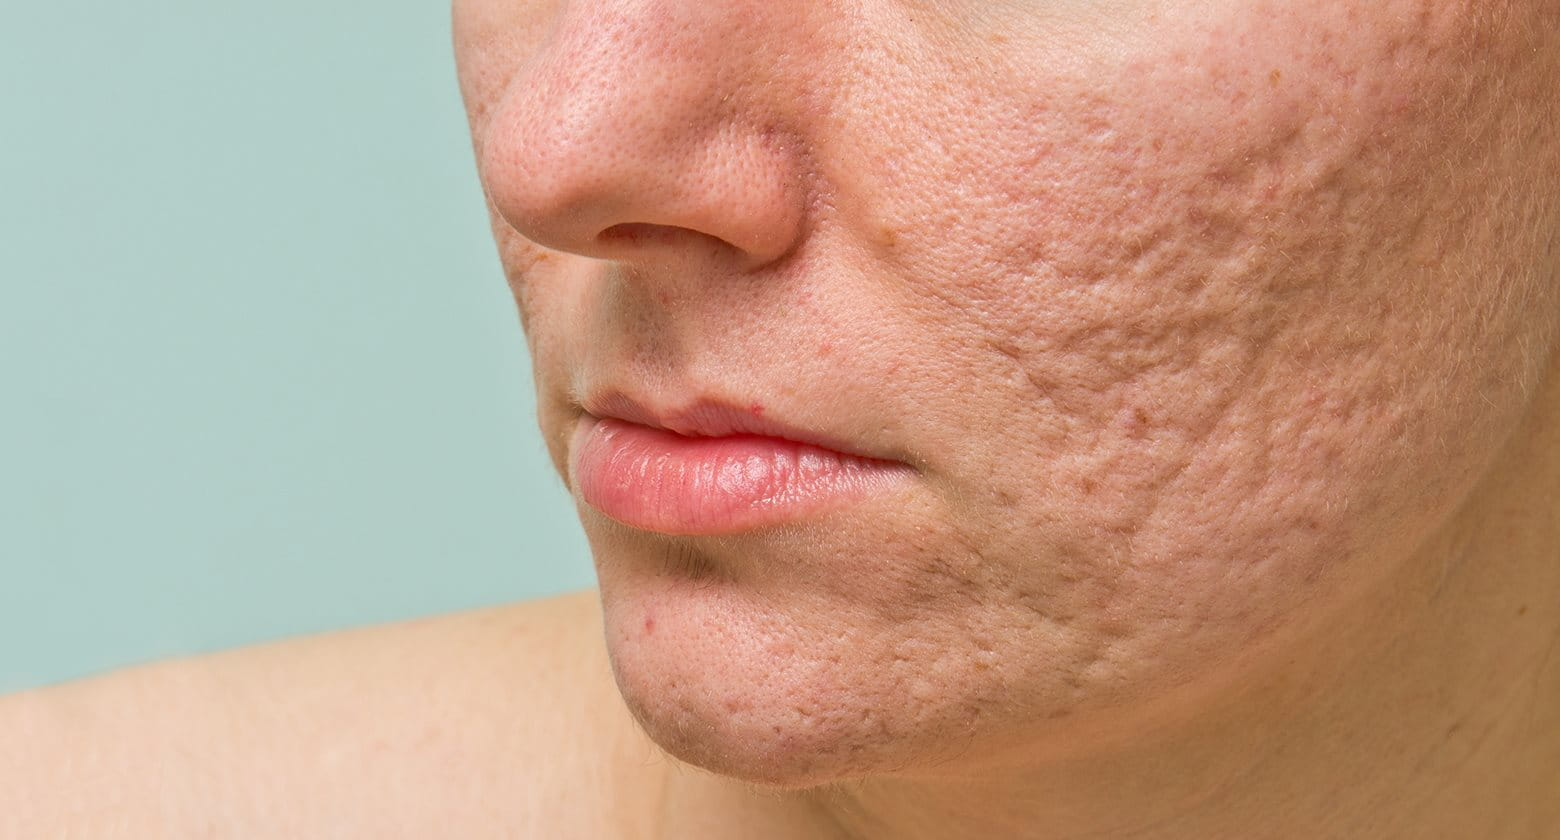 How to treat and remove acne scars